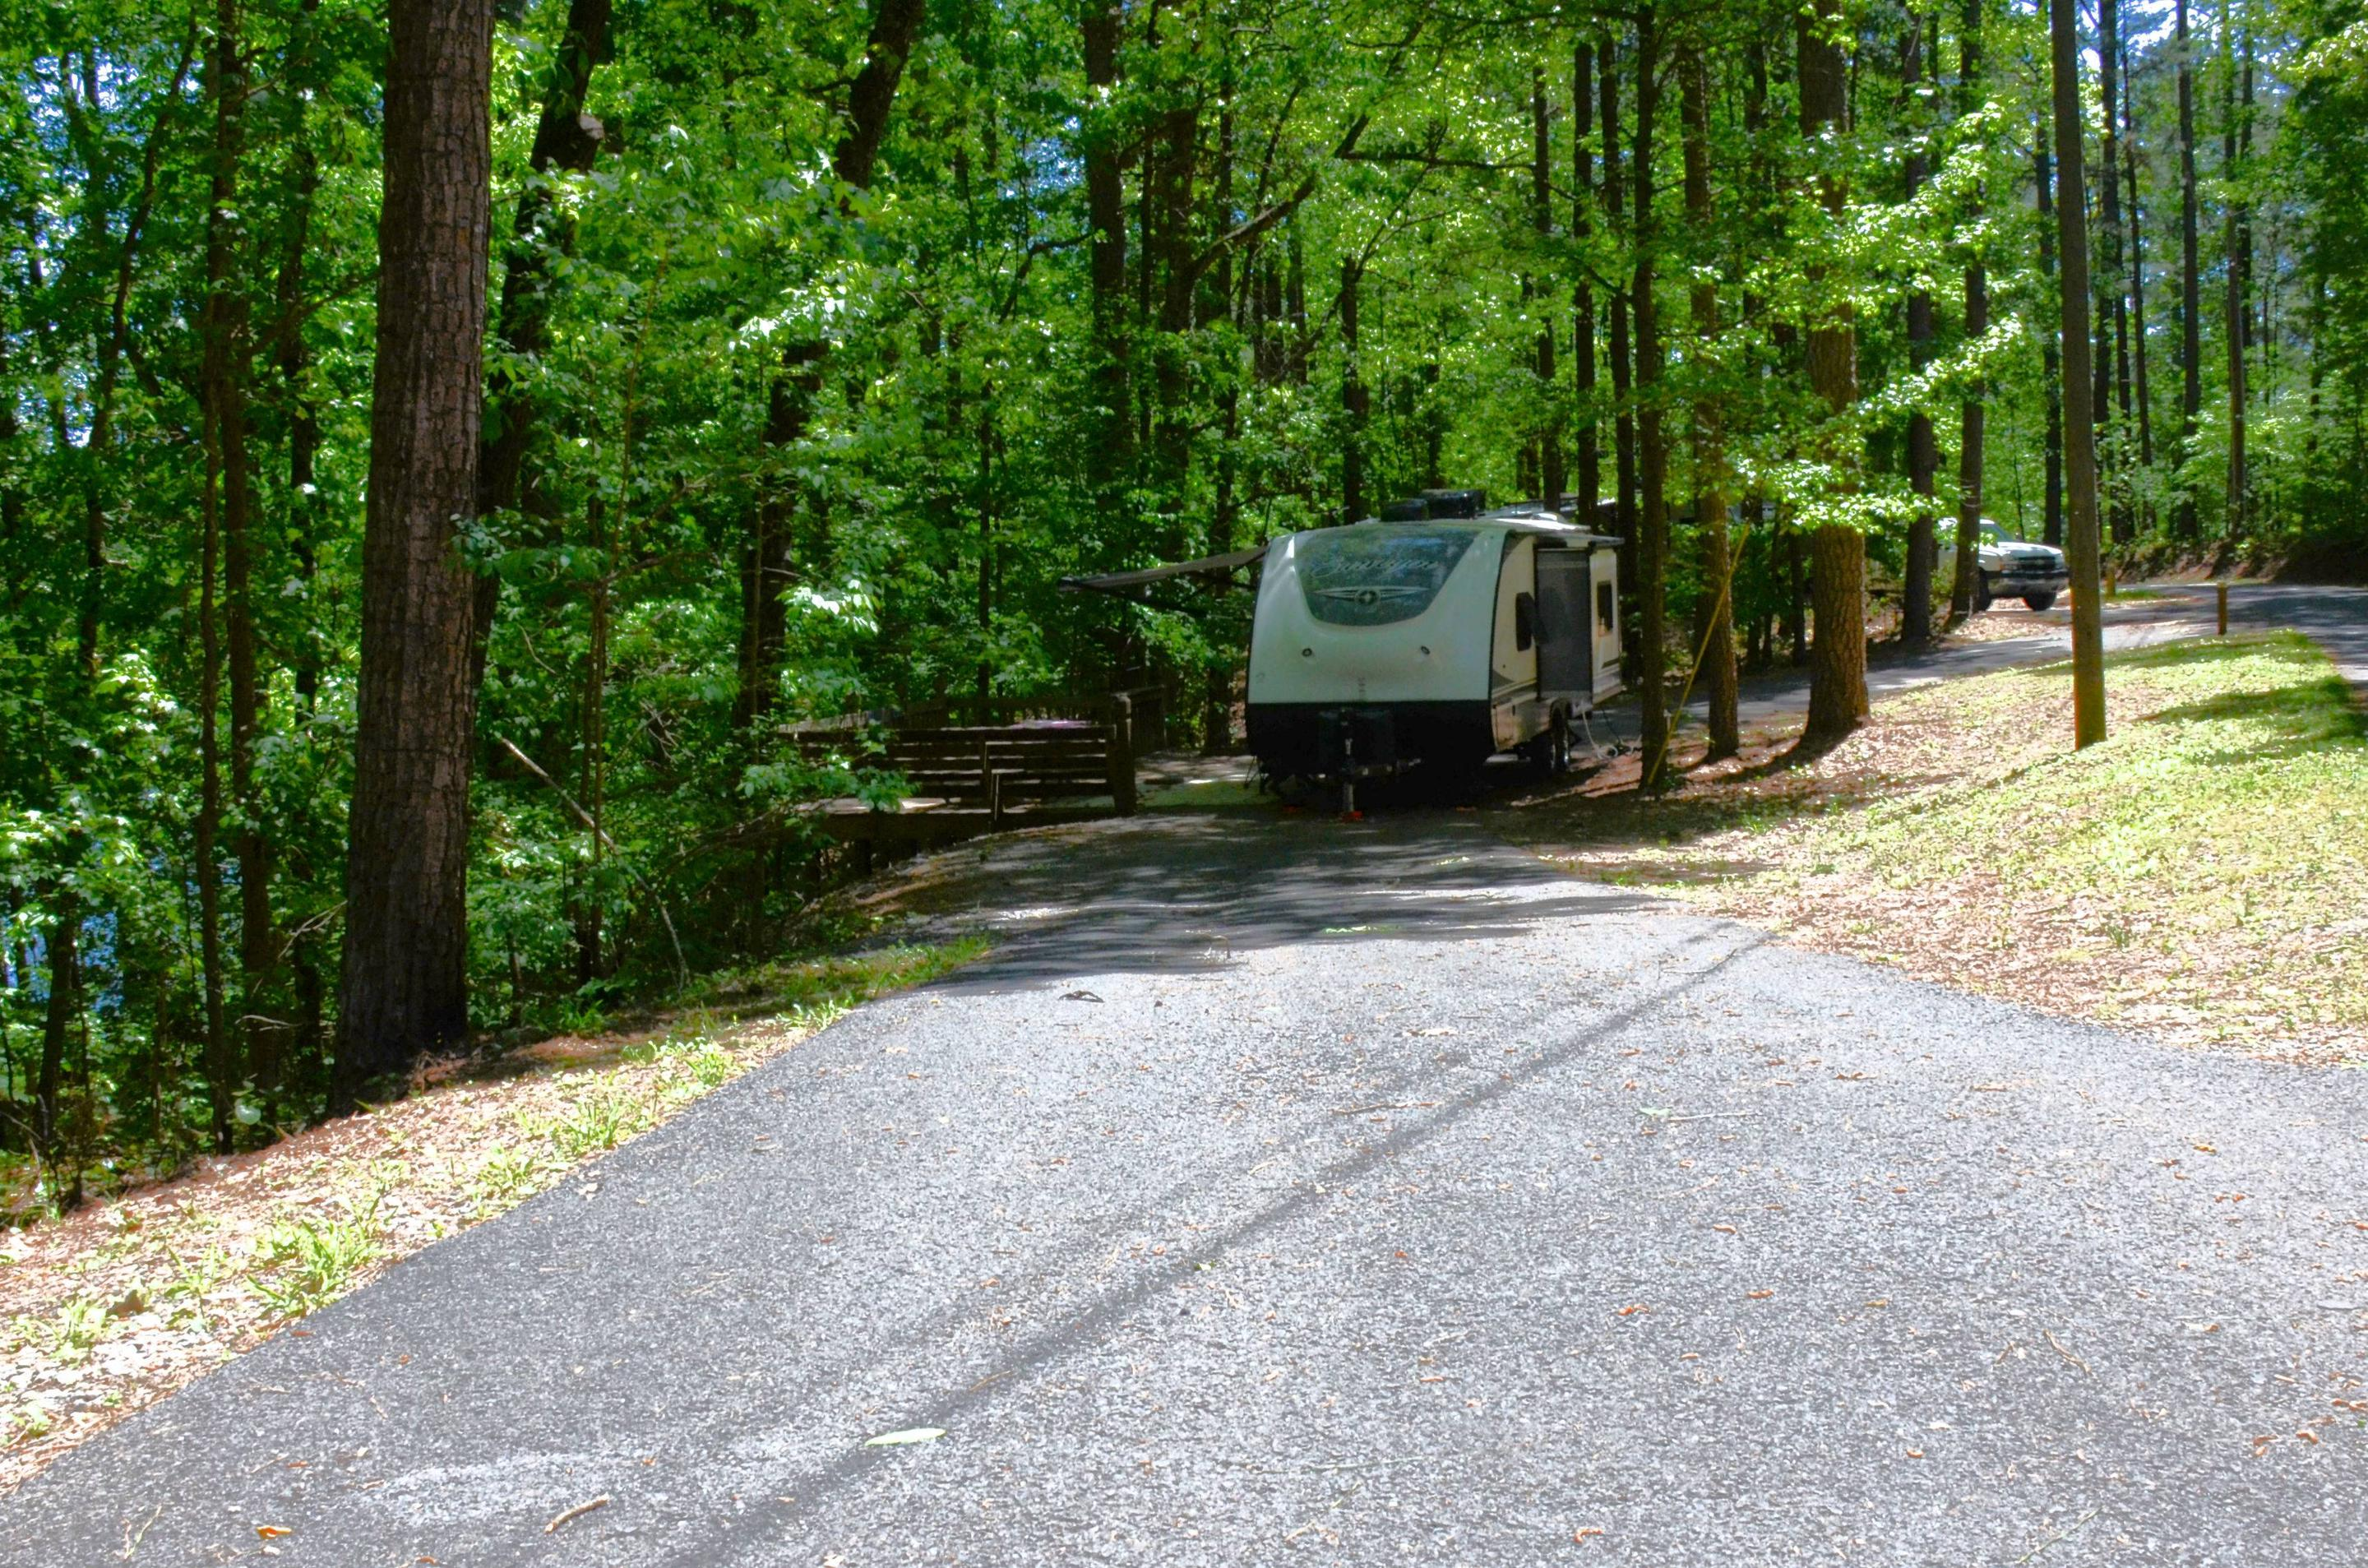 Pull-thru exit, driveway slope, awning-side clearance.McKinney Campground, campsite 138